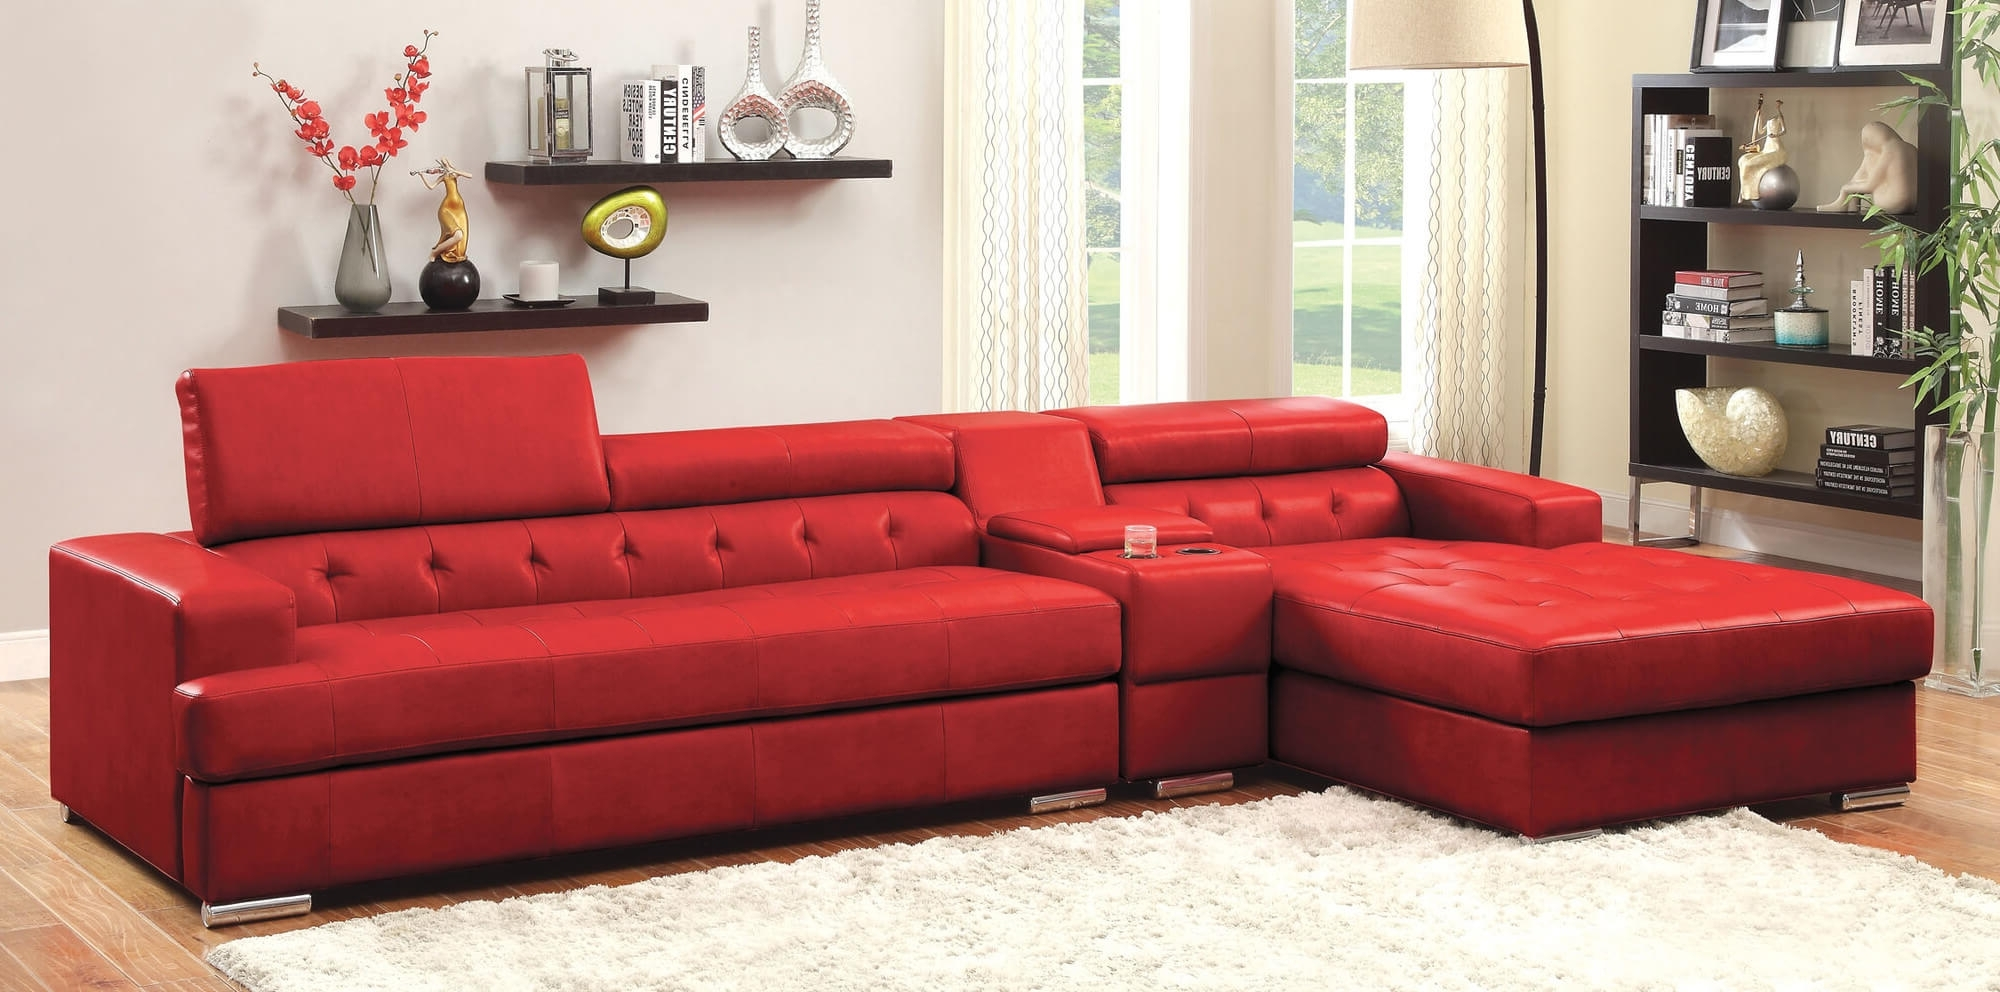 Most Recently Released Sectional Modern Sofa Interior White Button Leather Furniture Within Vancouver Bc Canada Sectional Sofas (View 10 of 20)